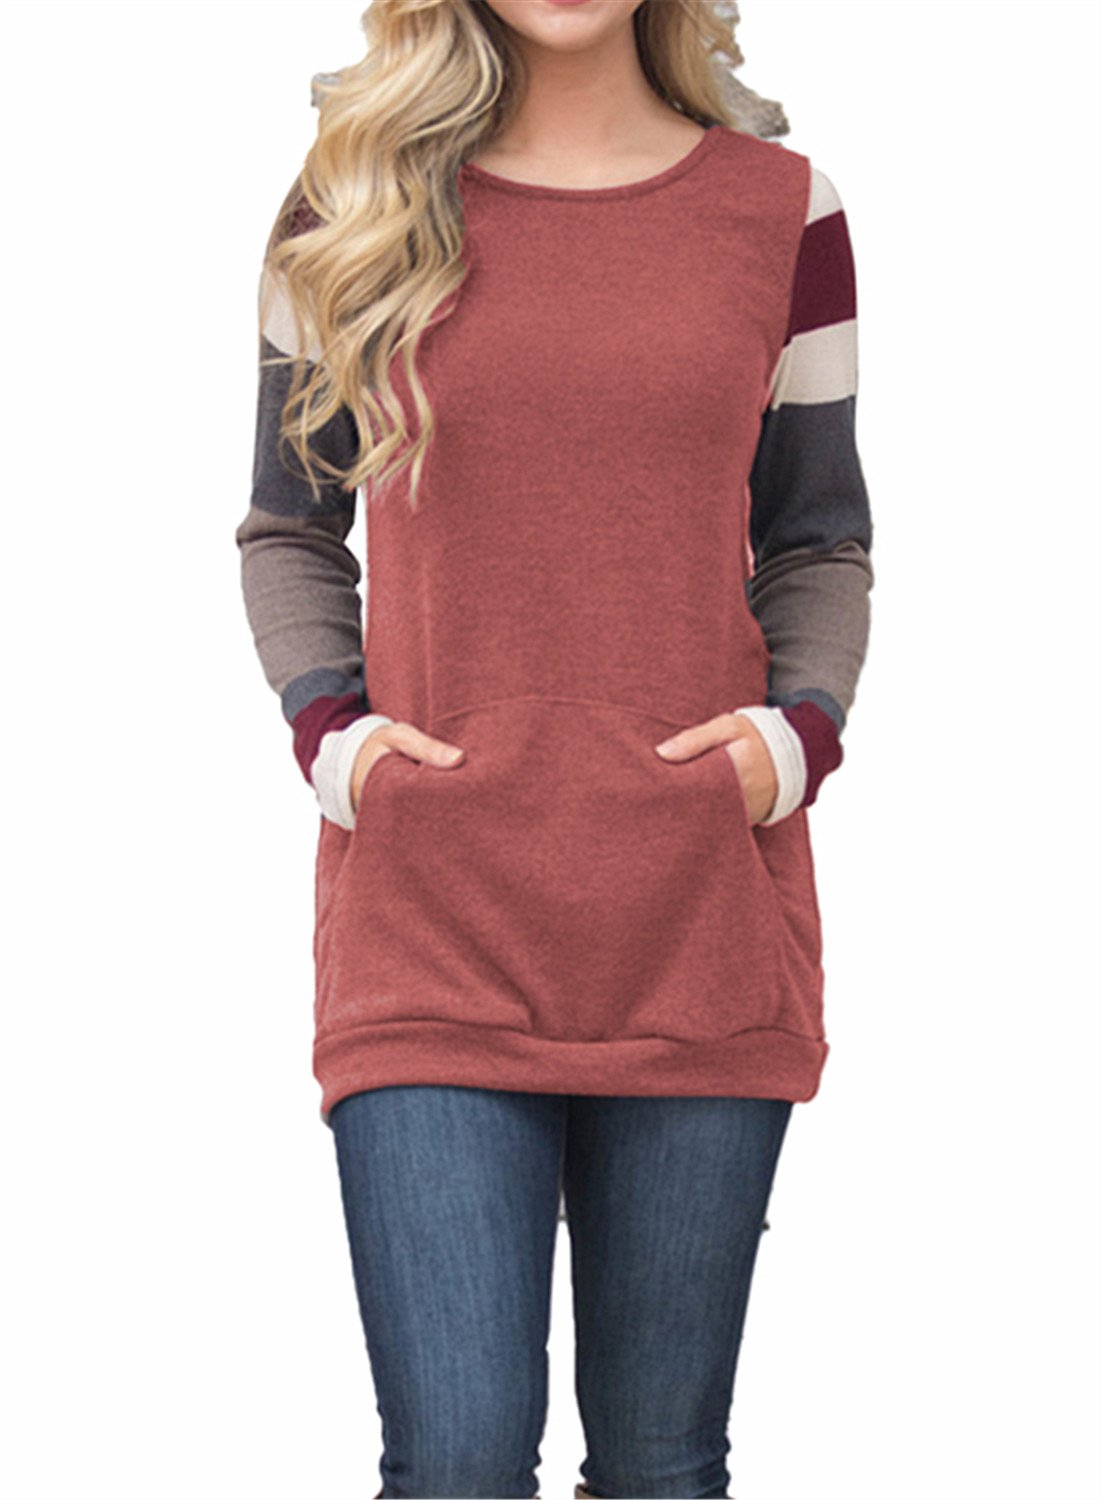 FIYOTE Womens Color Block Long Sleeve Tunic Sweatshirt Tops with Kangaroo Pocket